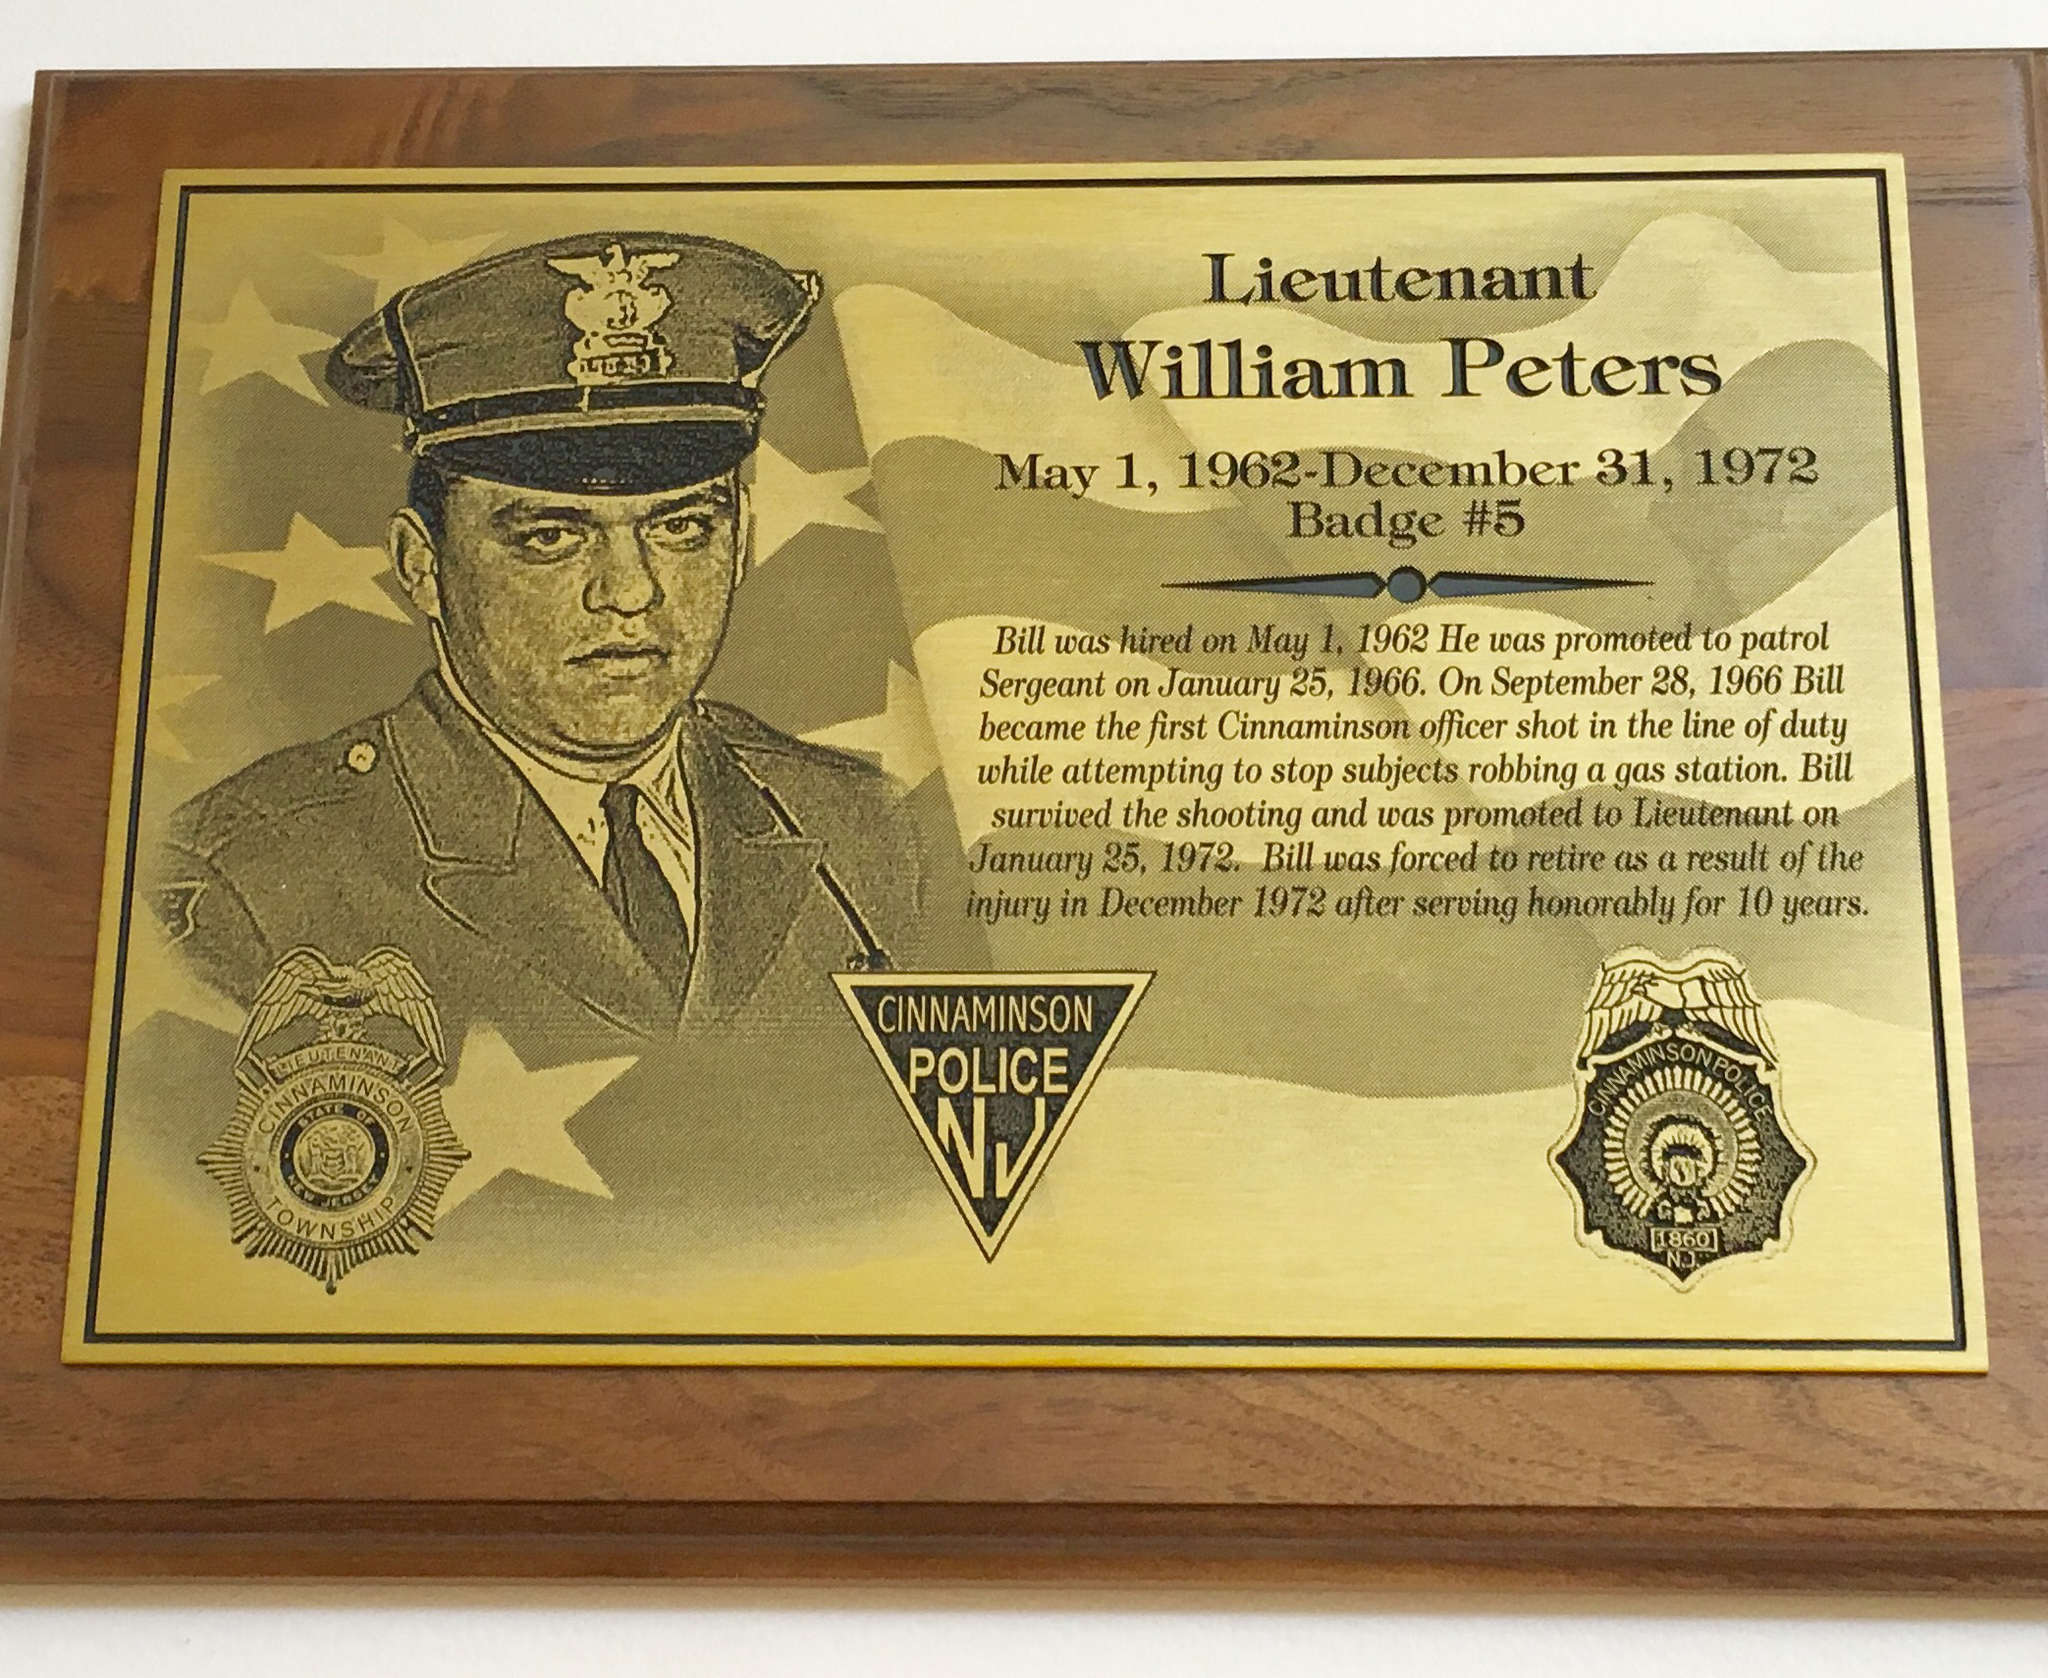 One of the plaques on display honors Lt. William Peters, who was woundedas he tried to stop a gas station robbery.